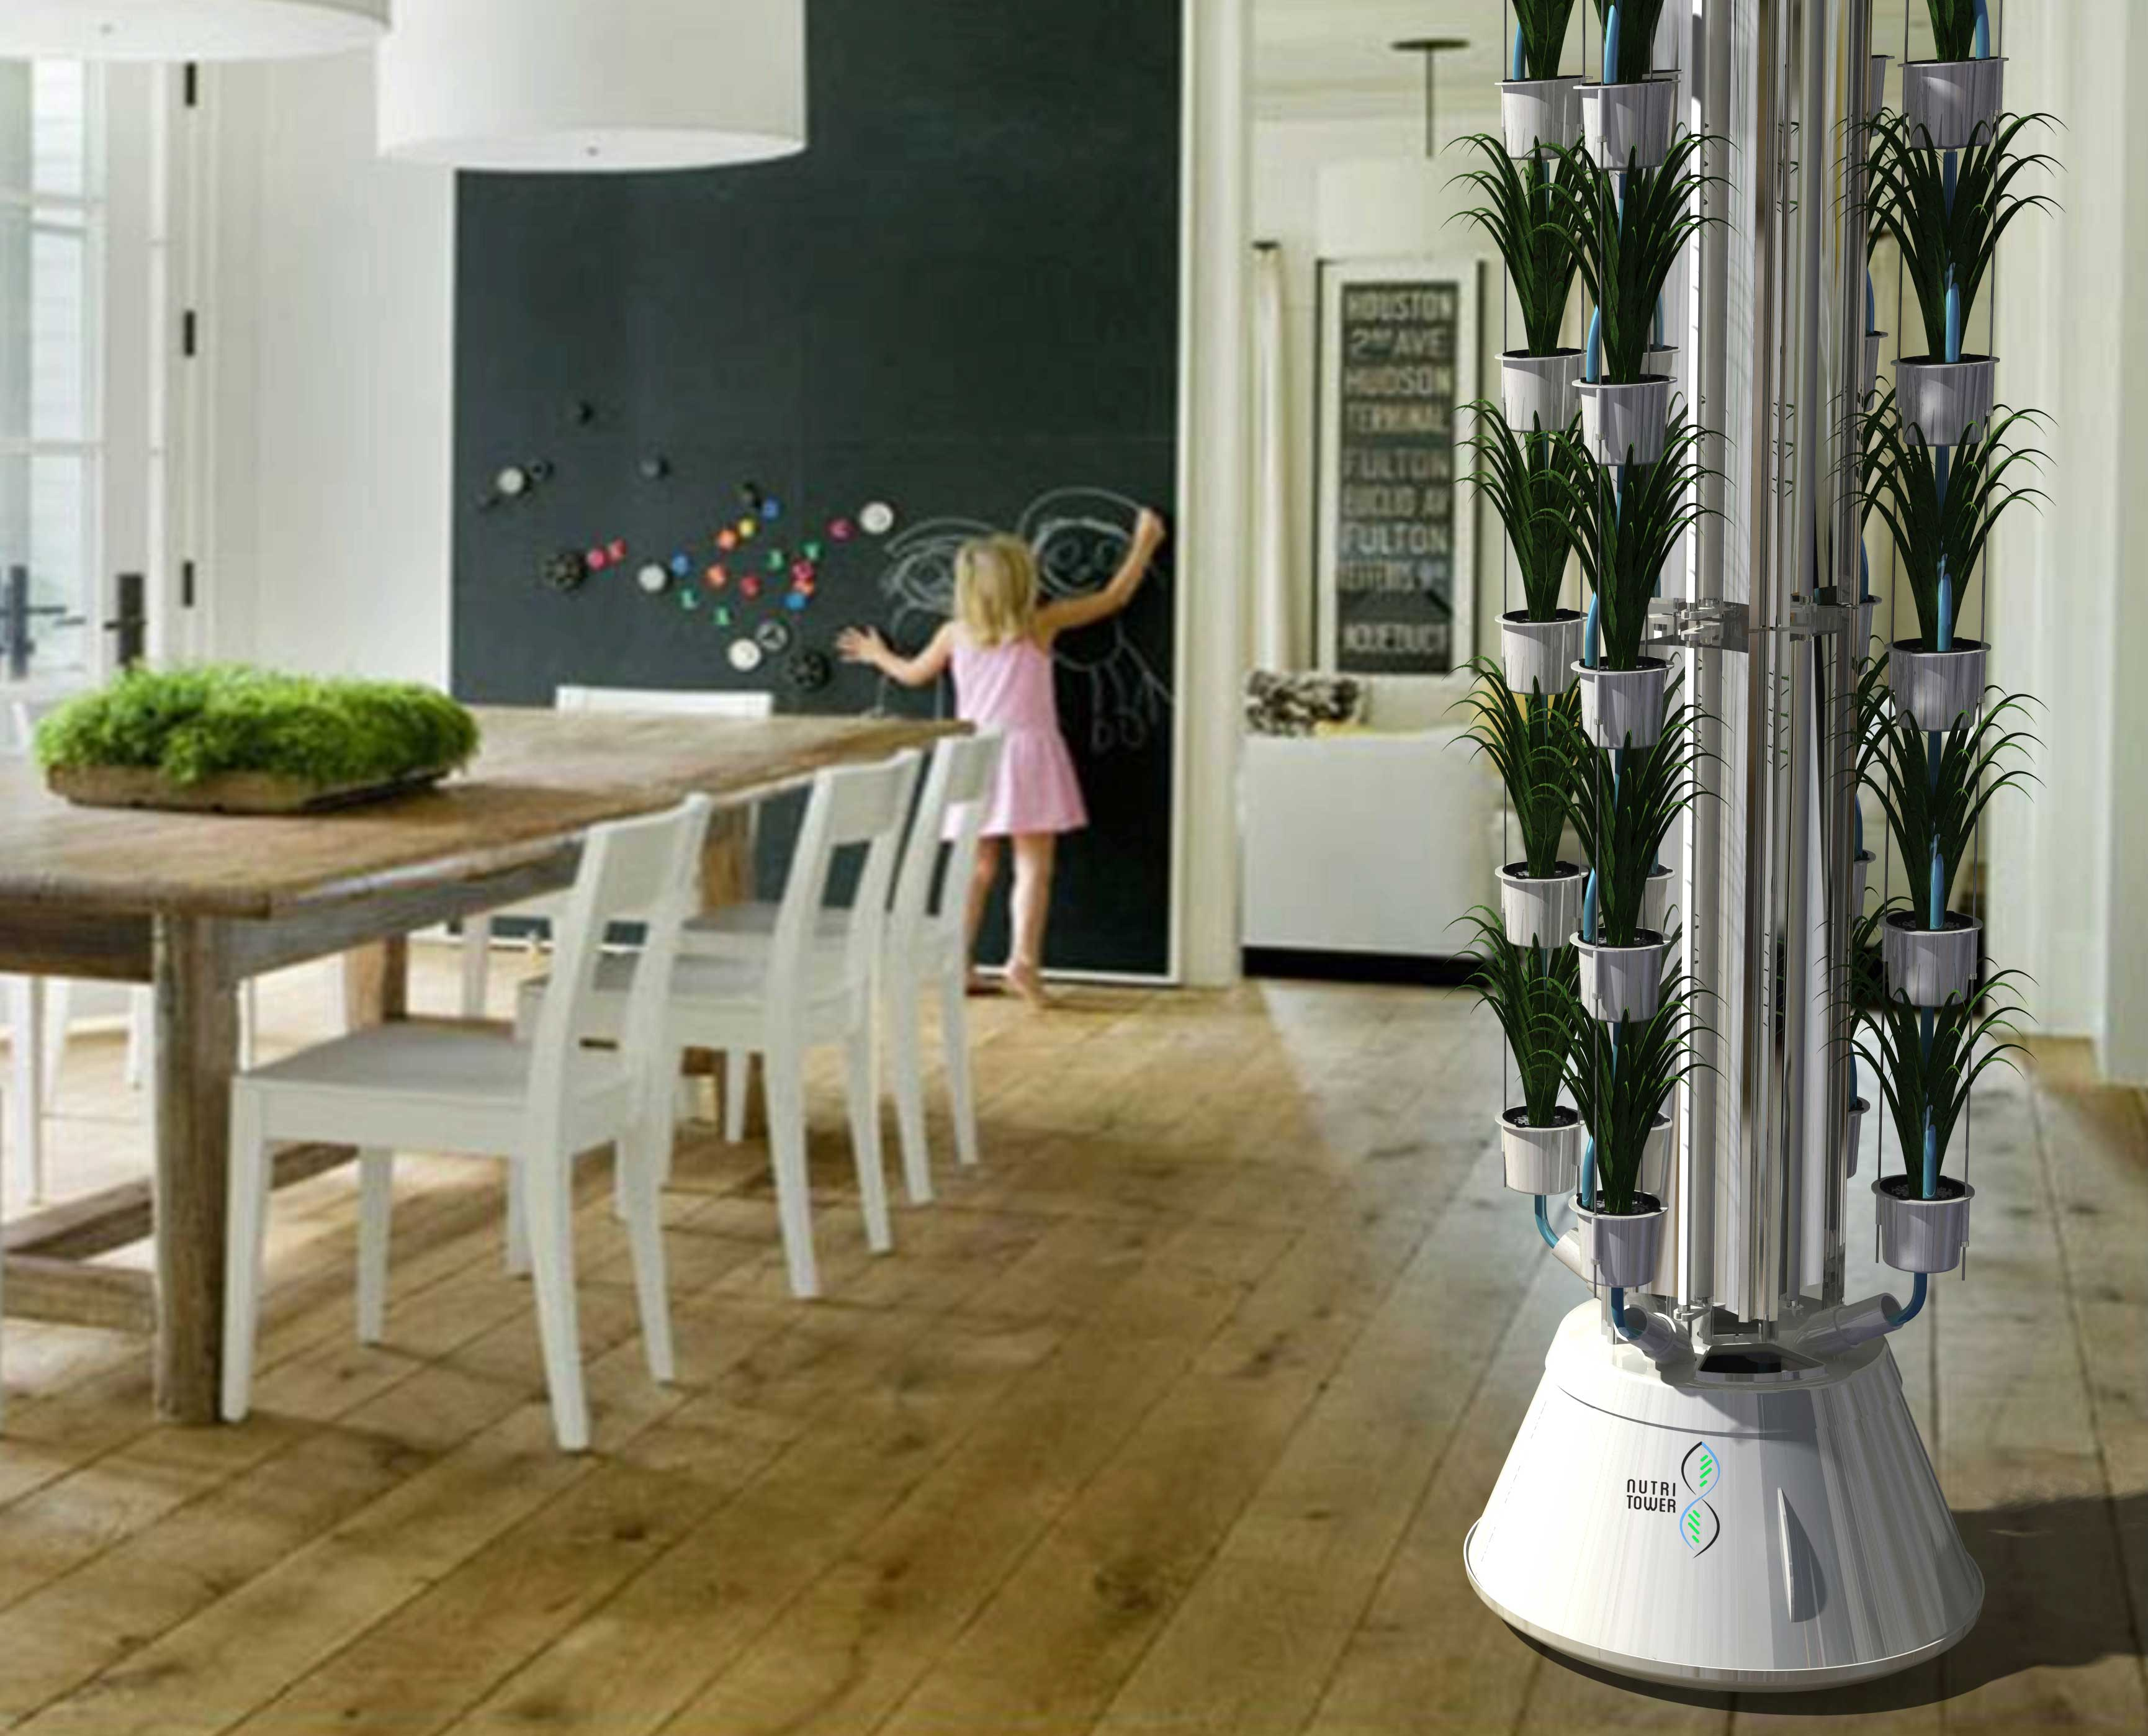 Nutri-Tower,Indoor gardening, gardening system, easy